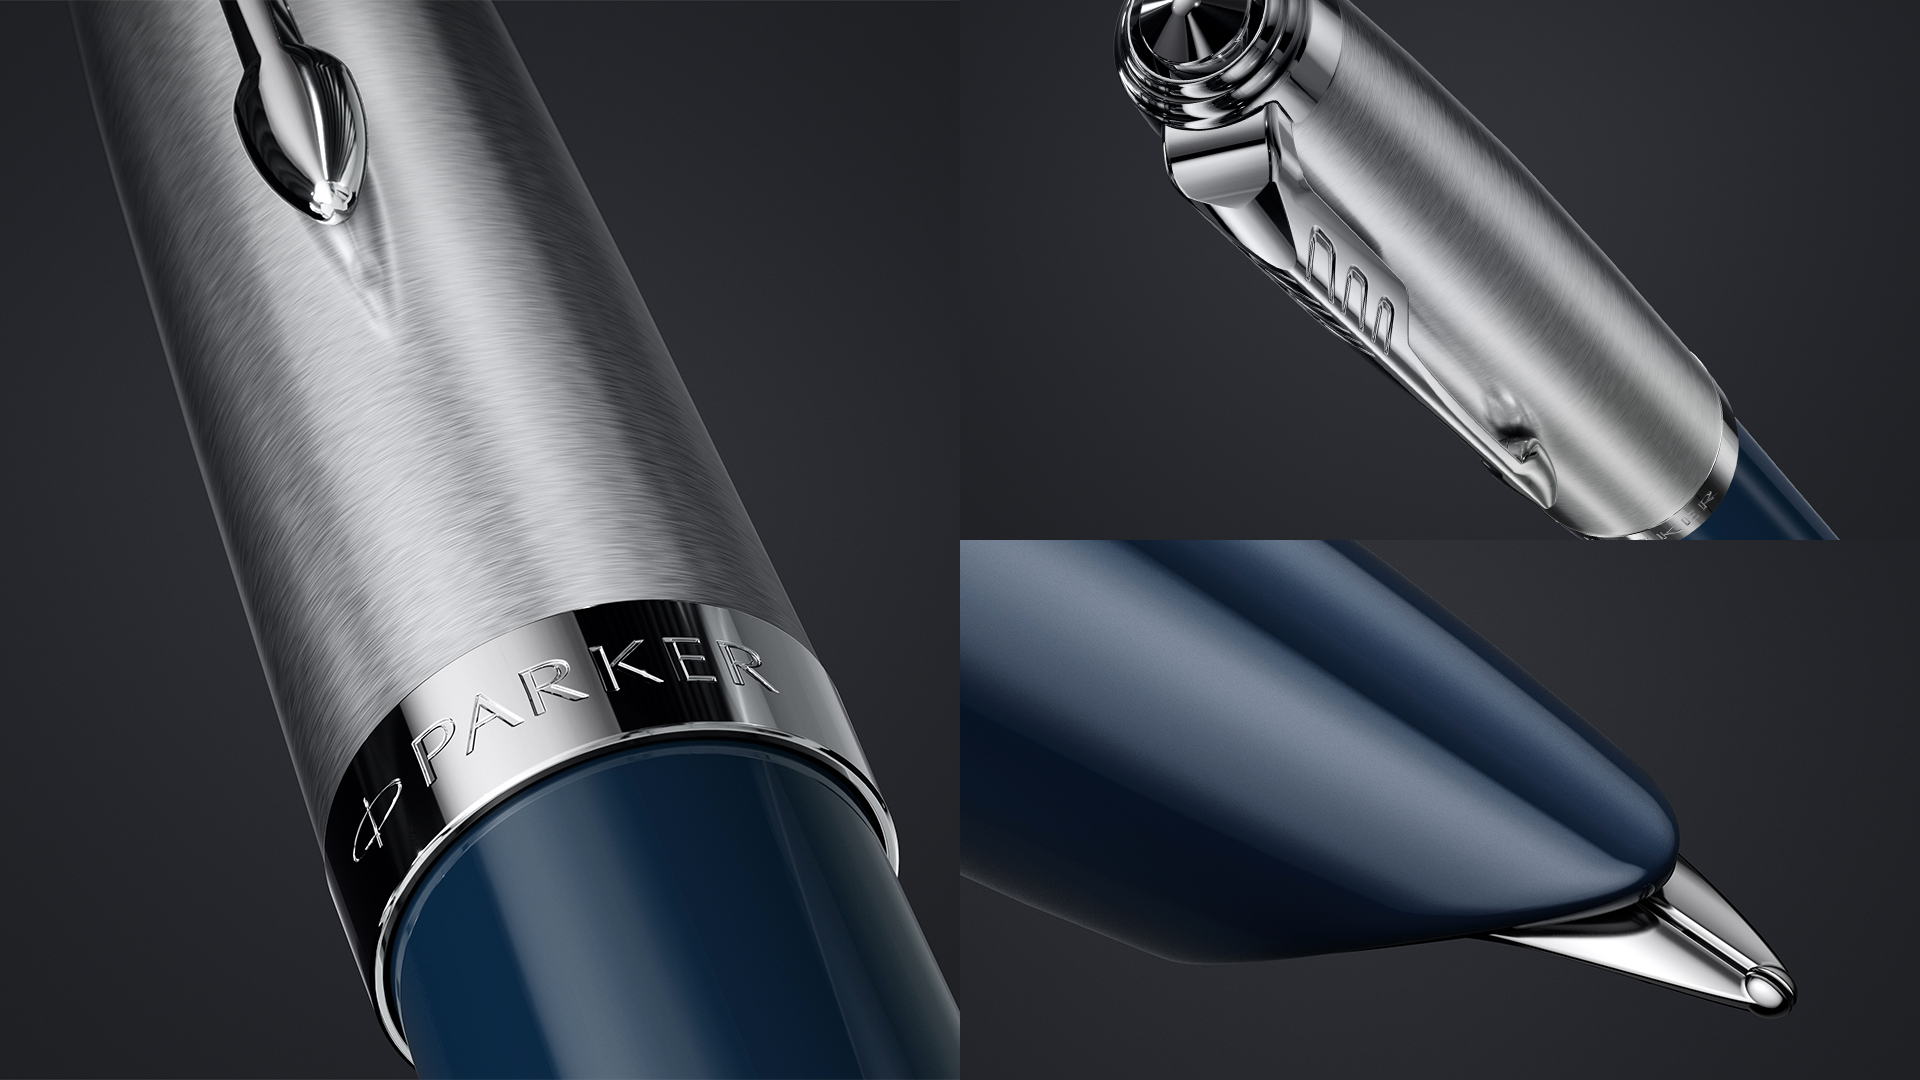 The iconic hooded nib of Parker 51 Midnight Blue